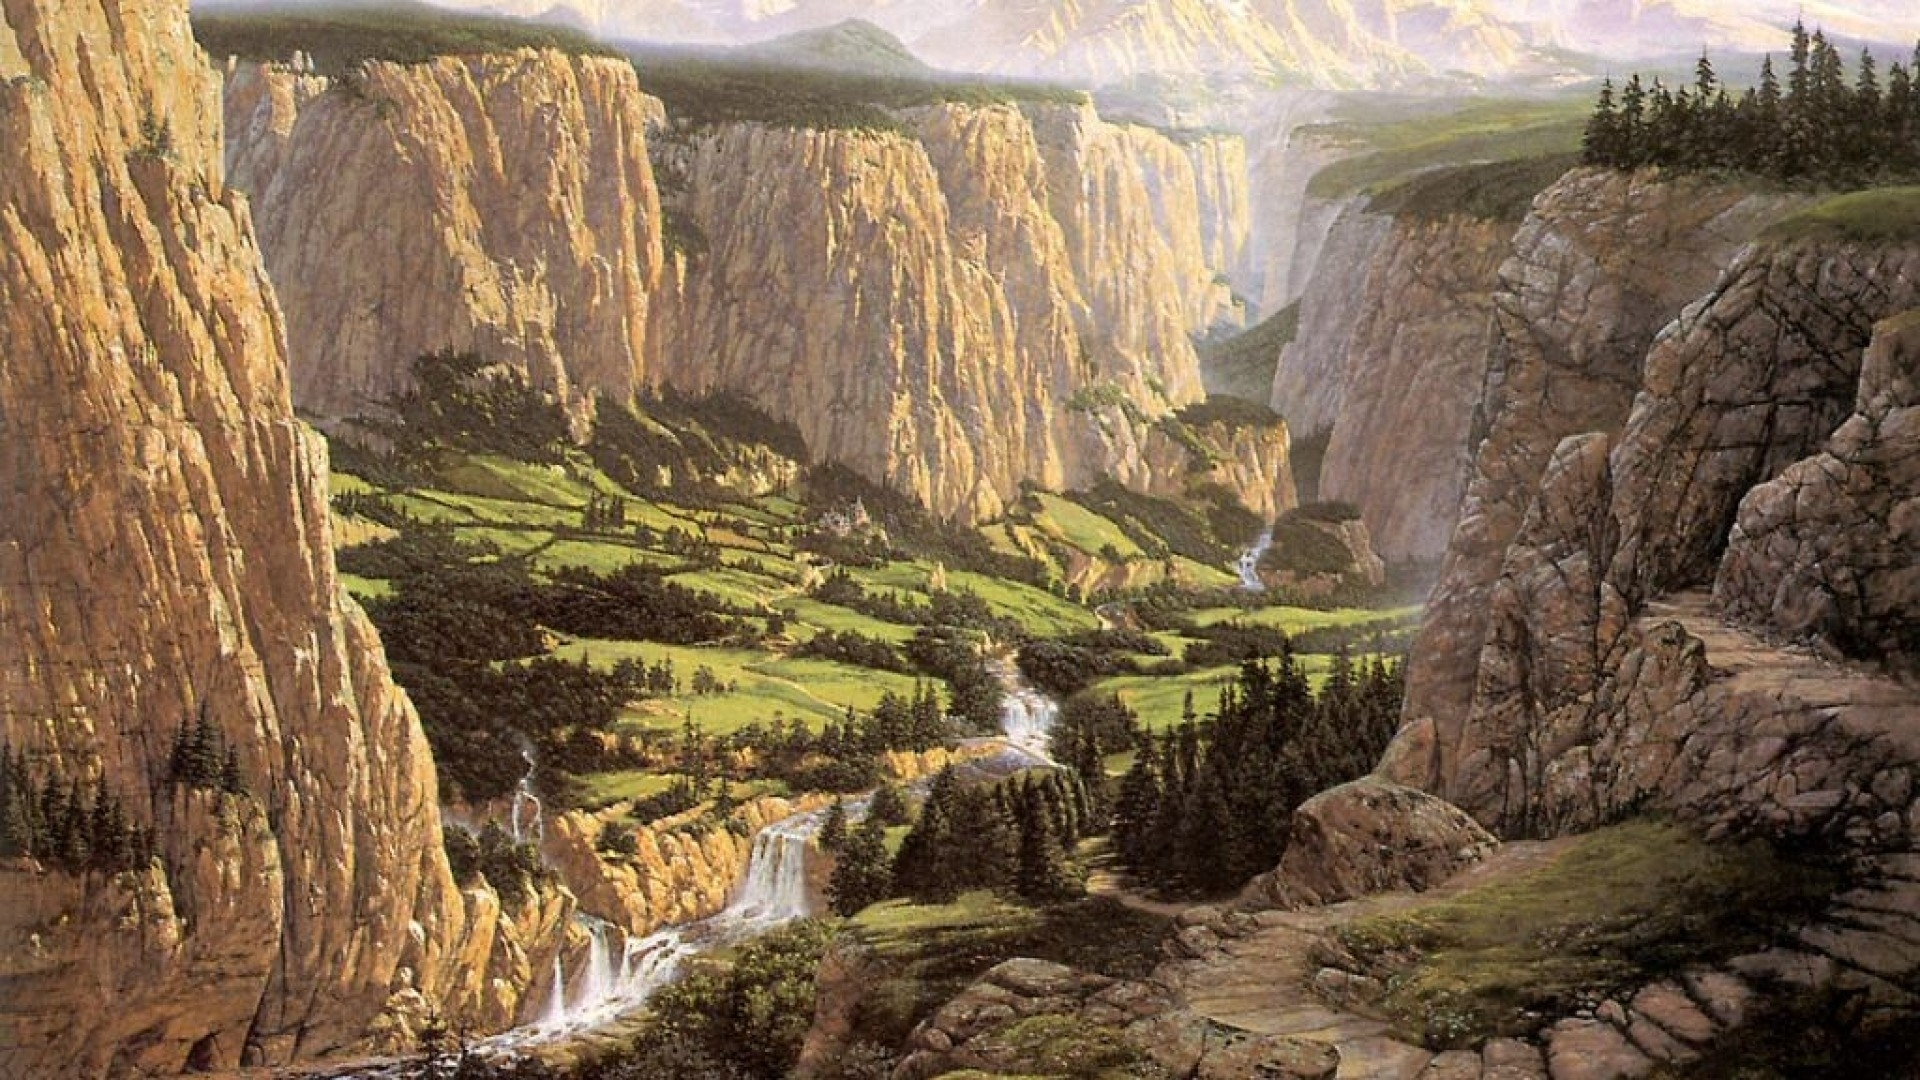 screenheaven: middle-earth rivendell ted nasmith cliffs landscapes